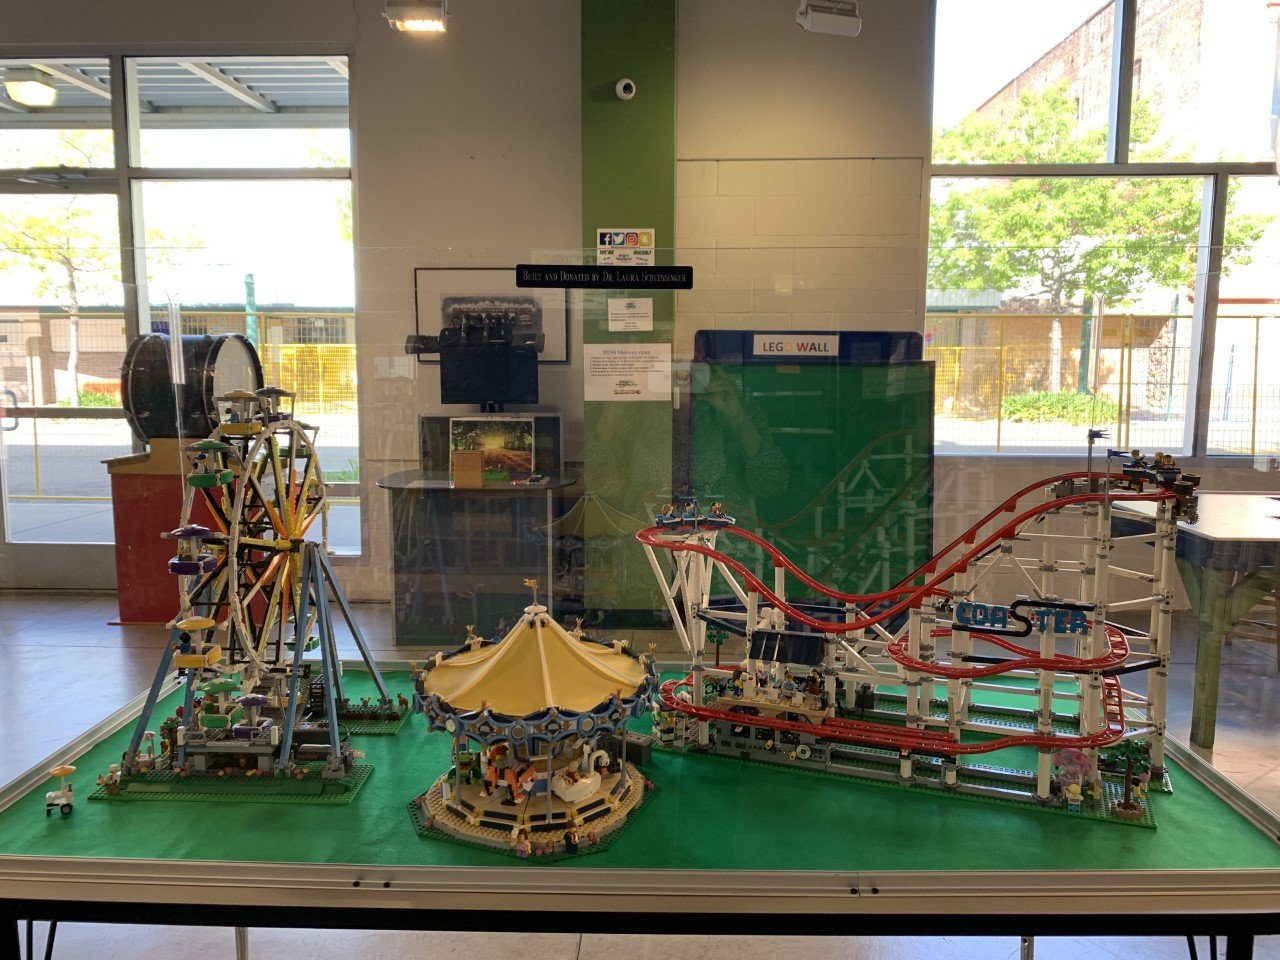 Dr. Laura Donates Lego sets to the WOW Museum in Lodi